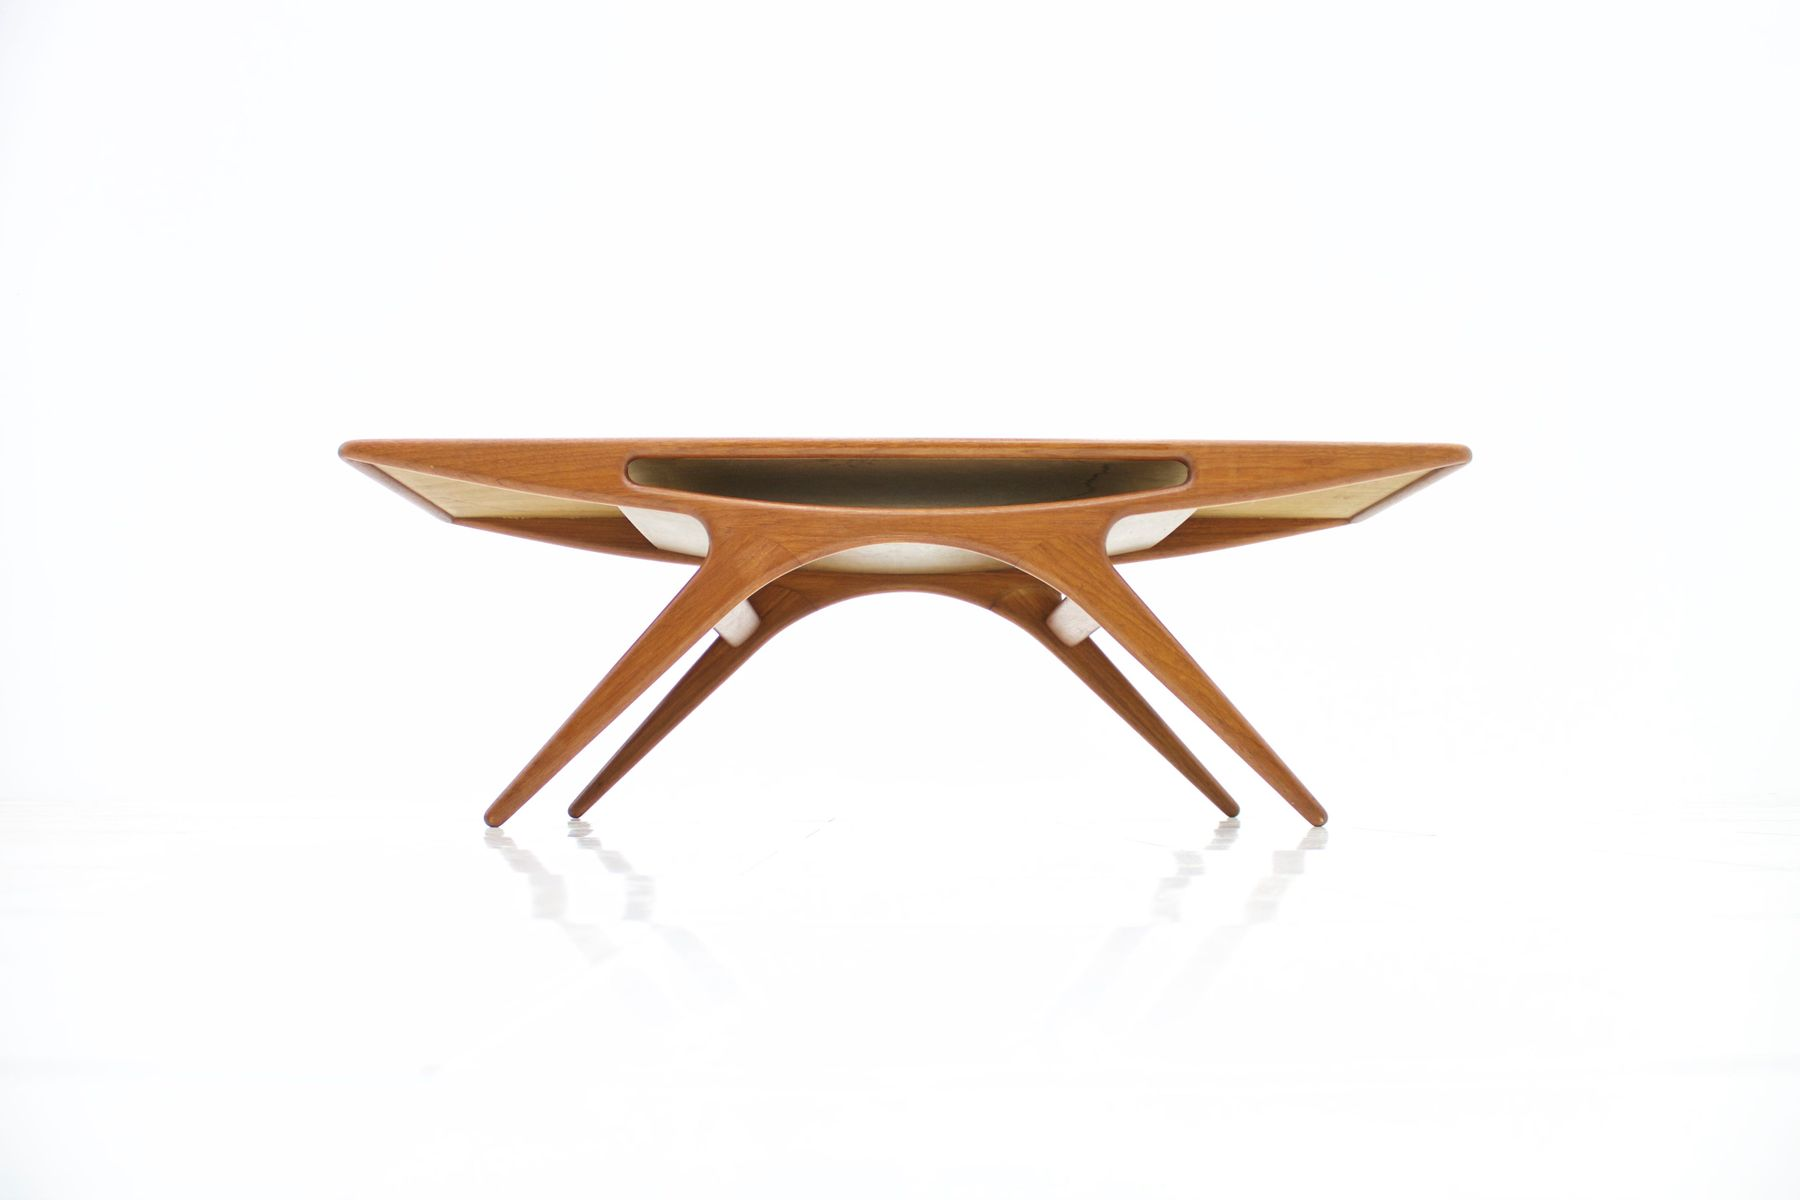 Vintage Danish Smile Coffee Table in Teak by Johannes Andersen for